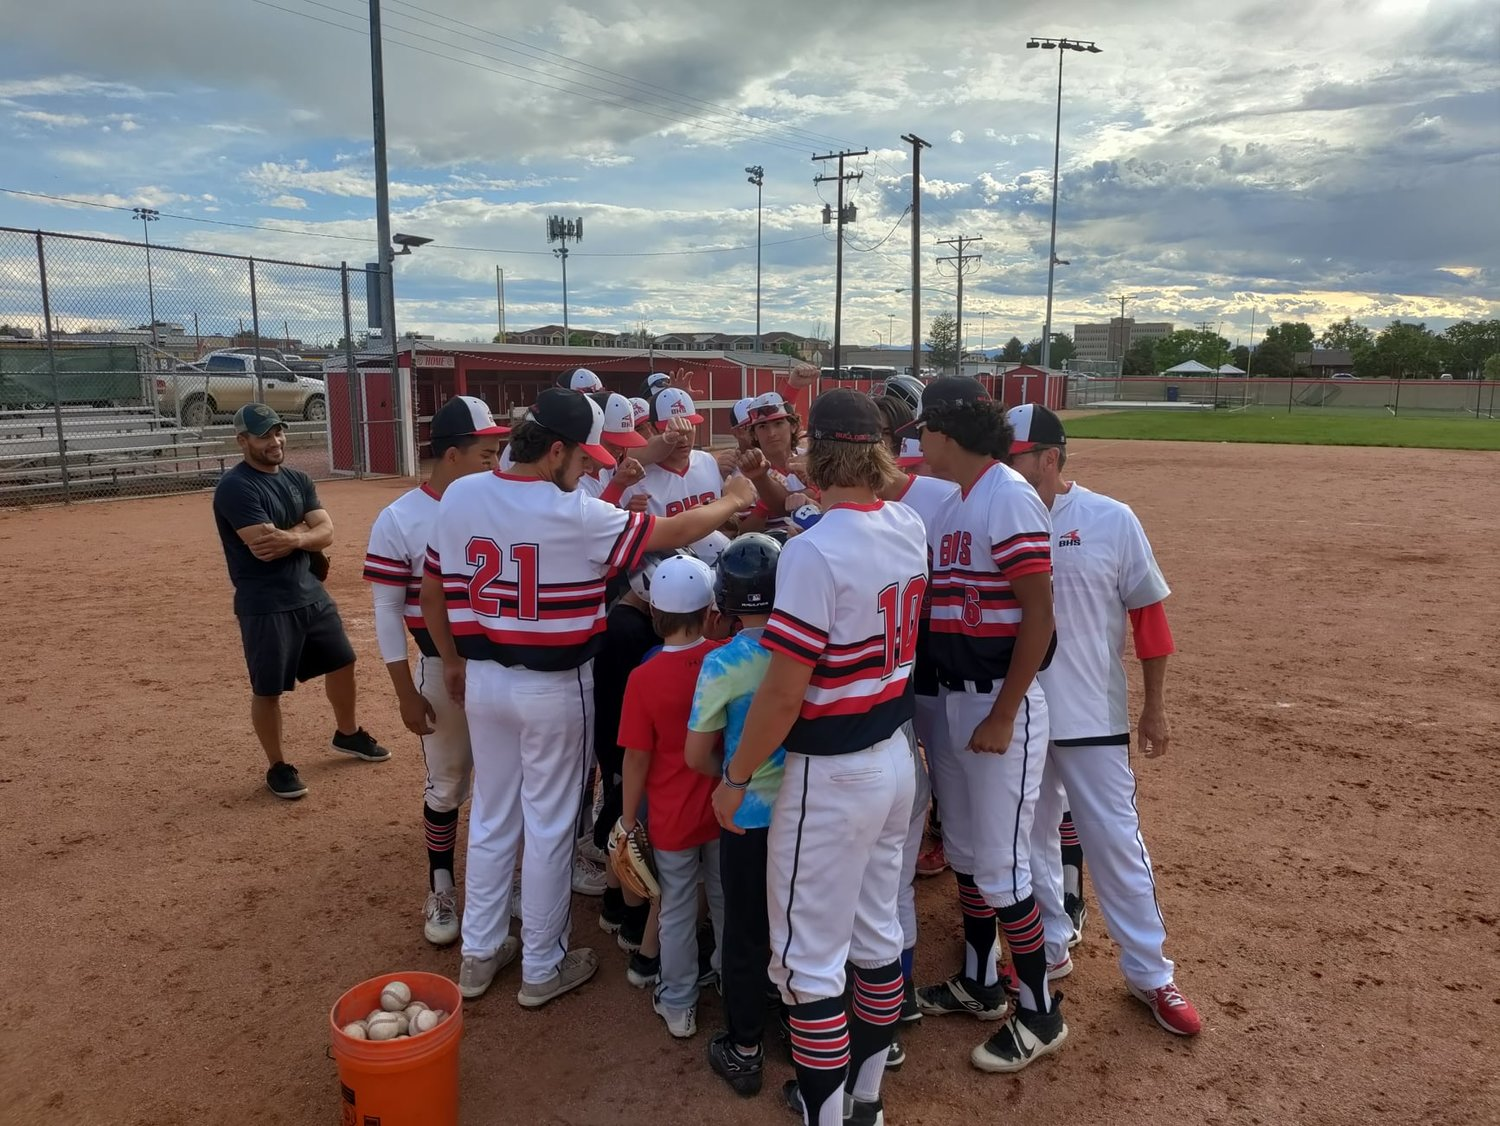 Brighton High School's baseball team rallies around a 10U rec league team that lost one of its players due to a car crash Memorial Day weekend..